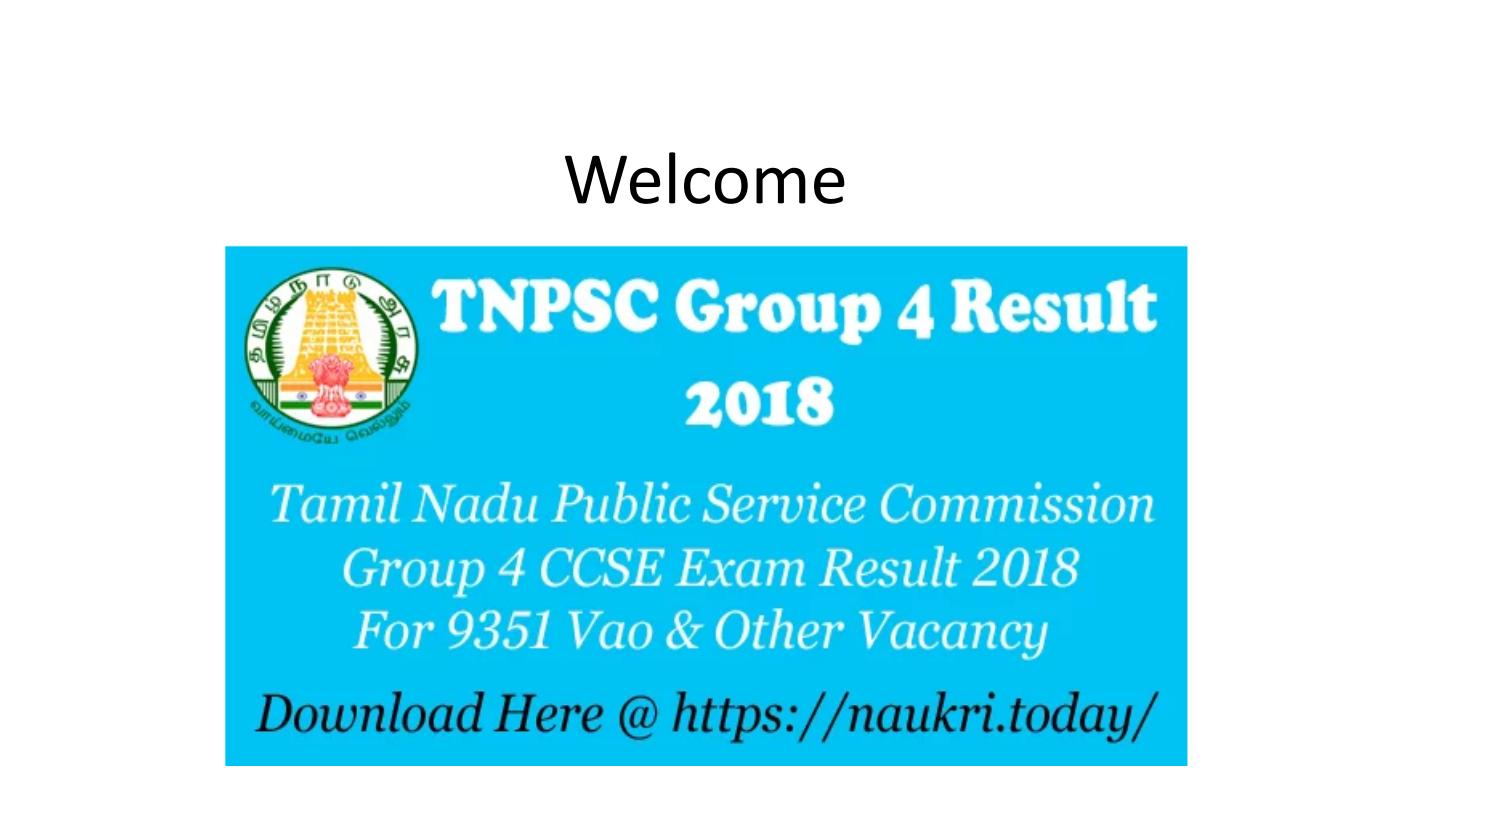 TNPSC Group 4 Result 2018 | TNPSC Group IV Exam Result Download Here